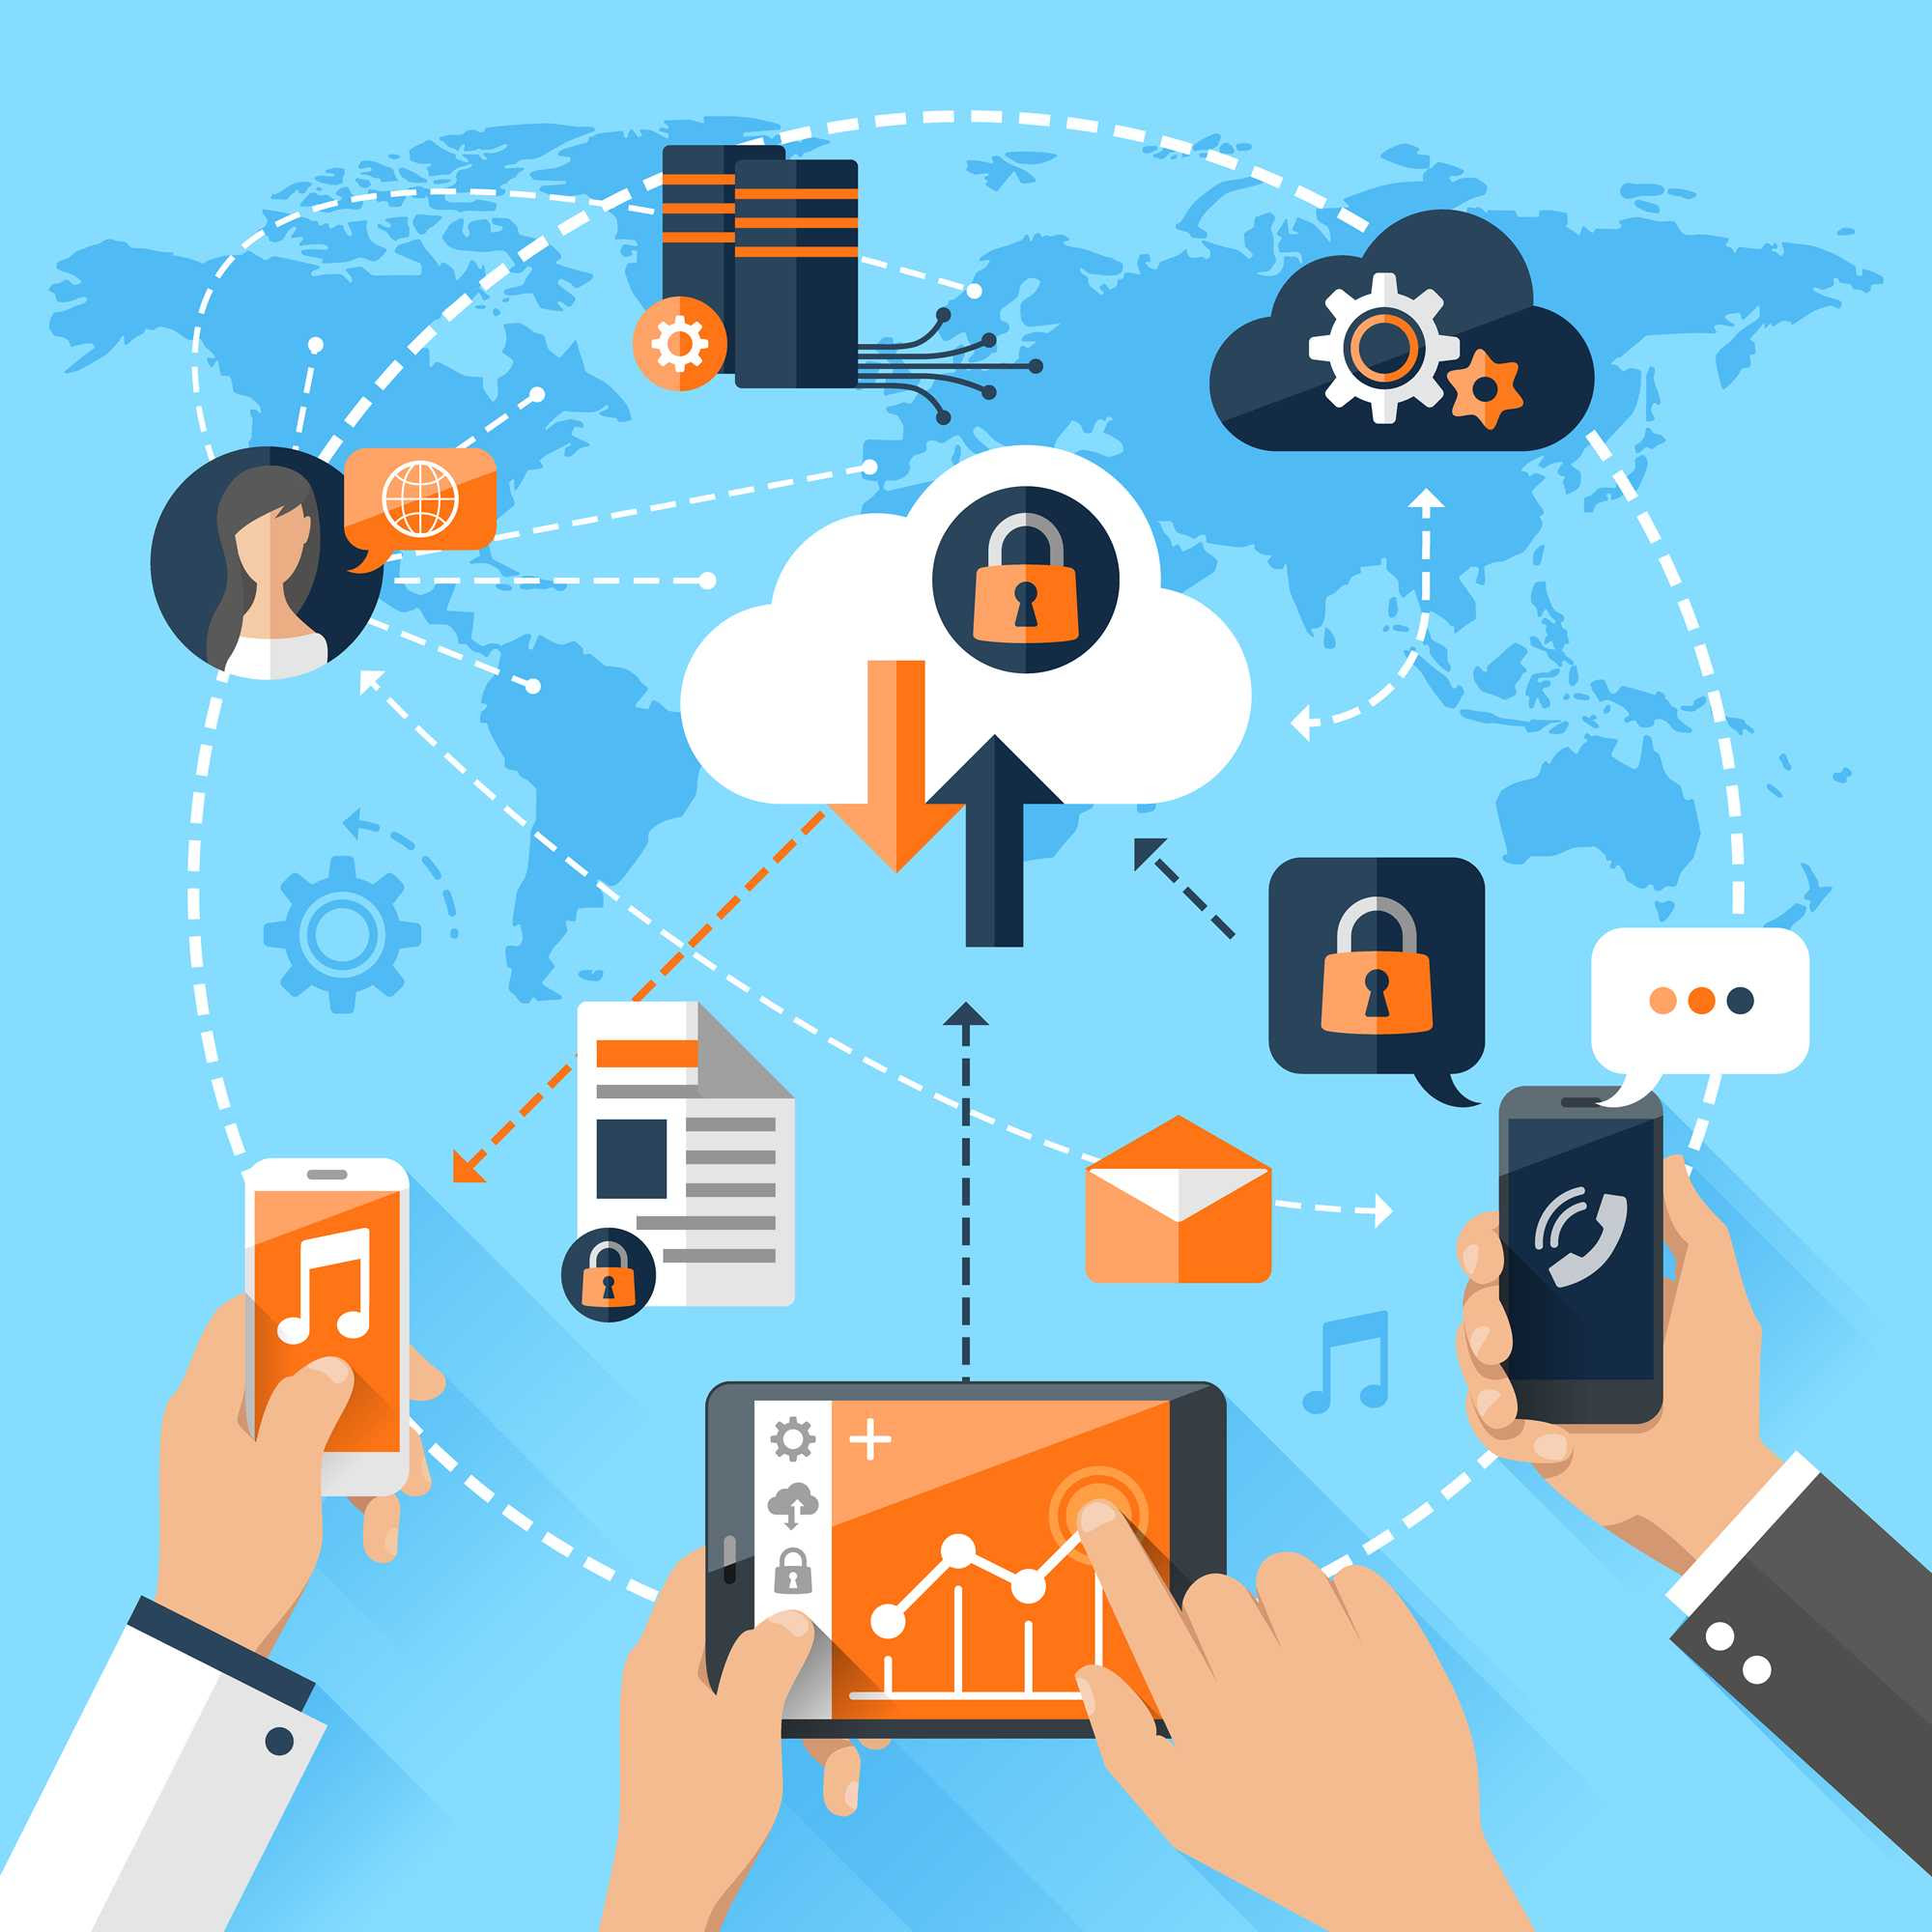 Collaboration brings cloud solutions to higher education ...